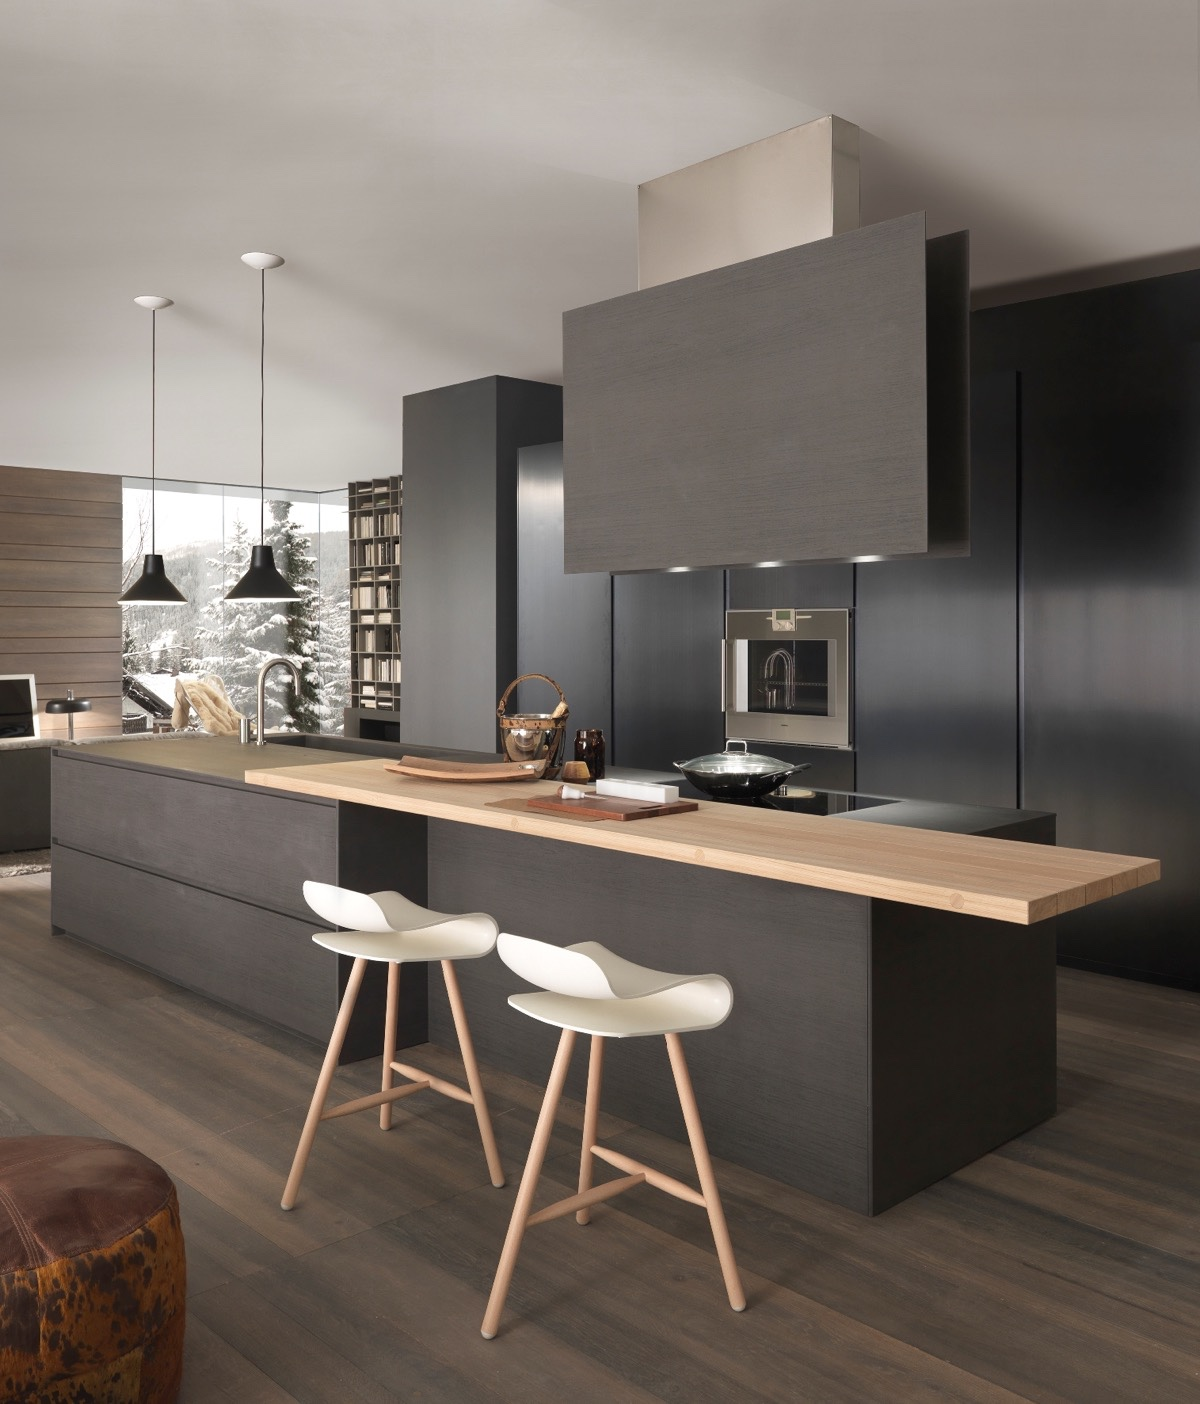 Black Kitchen Featuring Blocks Two Different Types Of Wood - 36 stunning black kitchens that tempt you to go dark for your next remodel